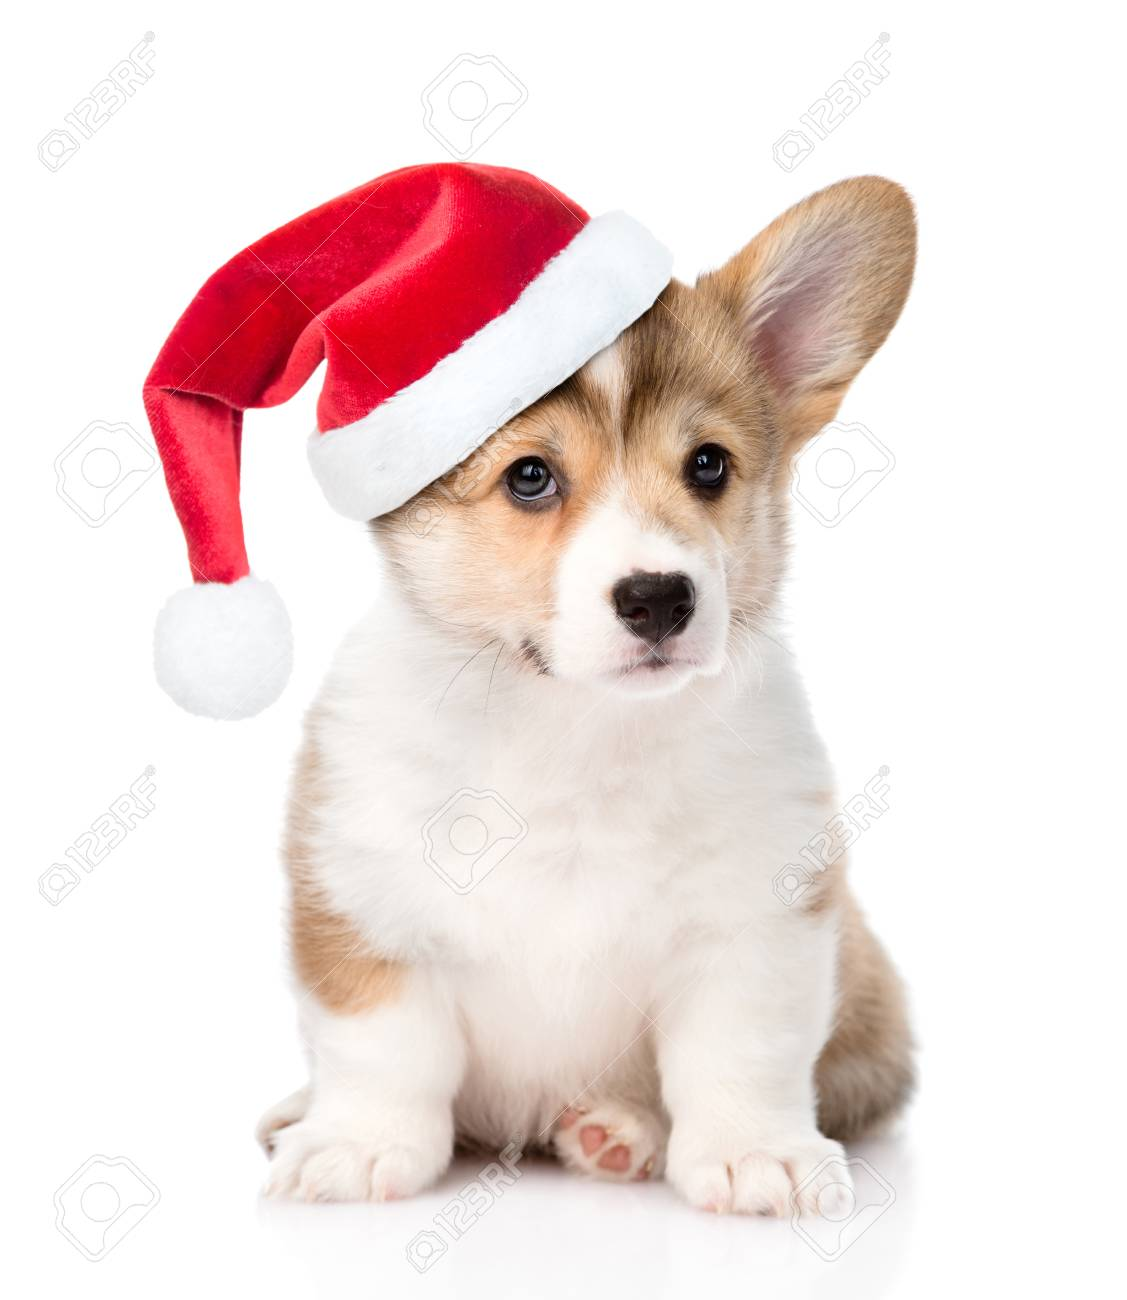 Pembroke Welsh Corgi Puppy With Red